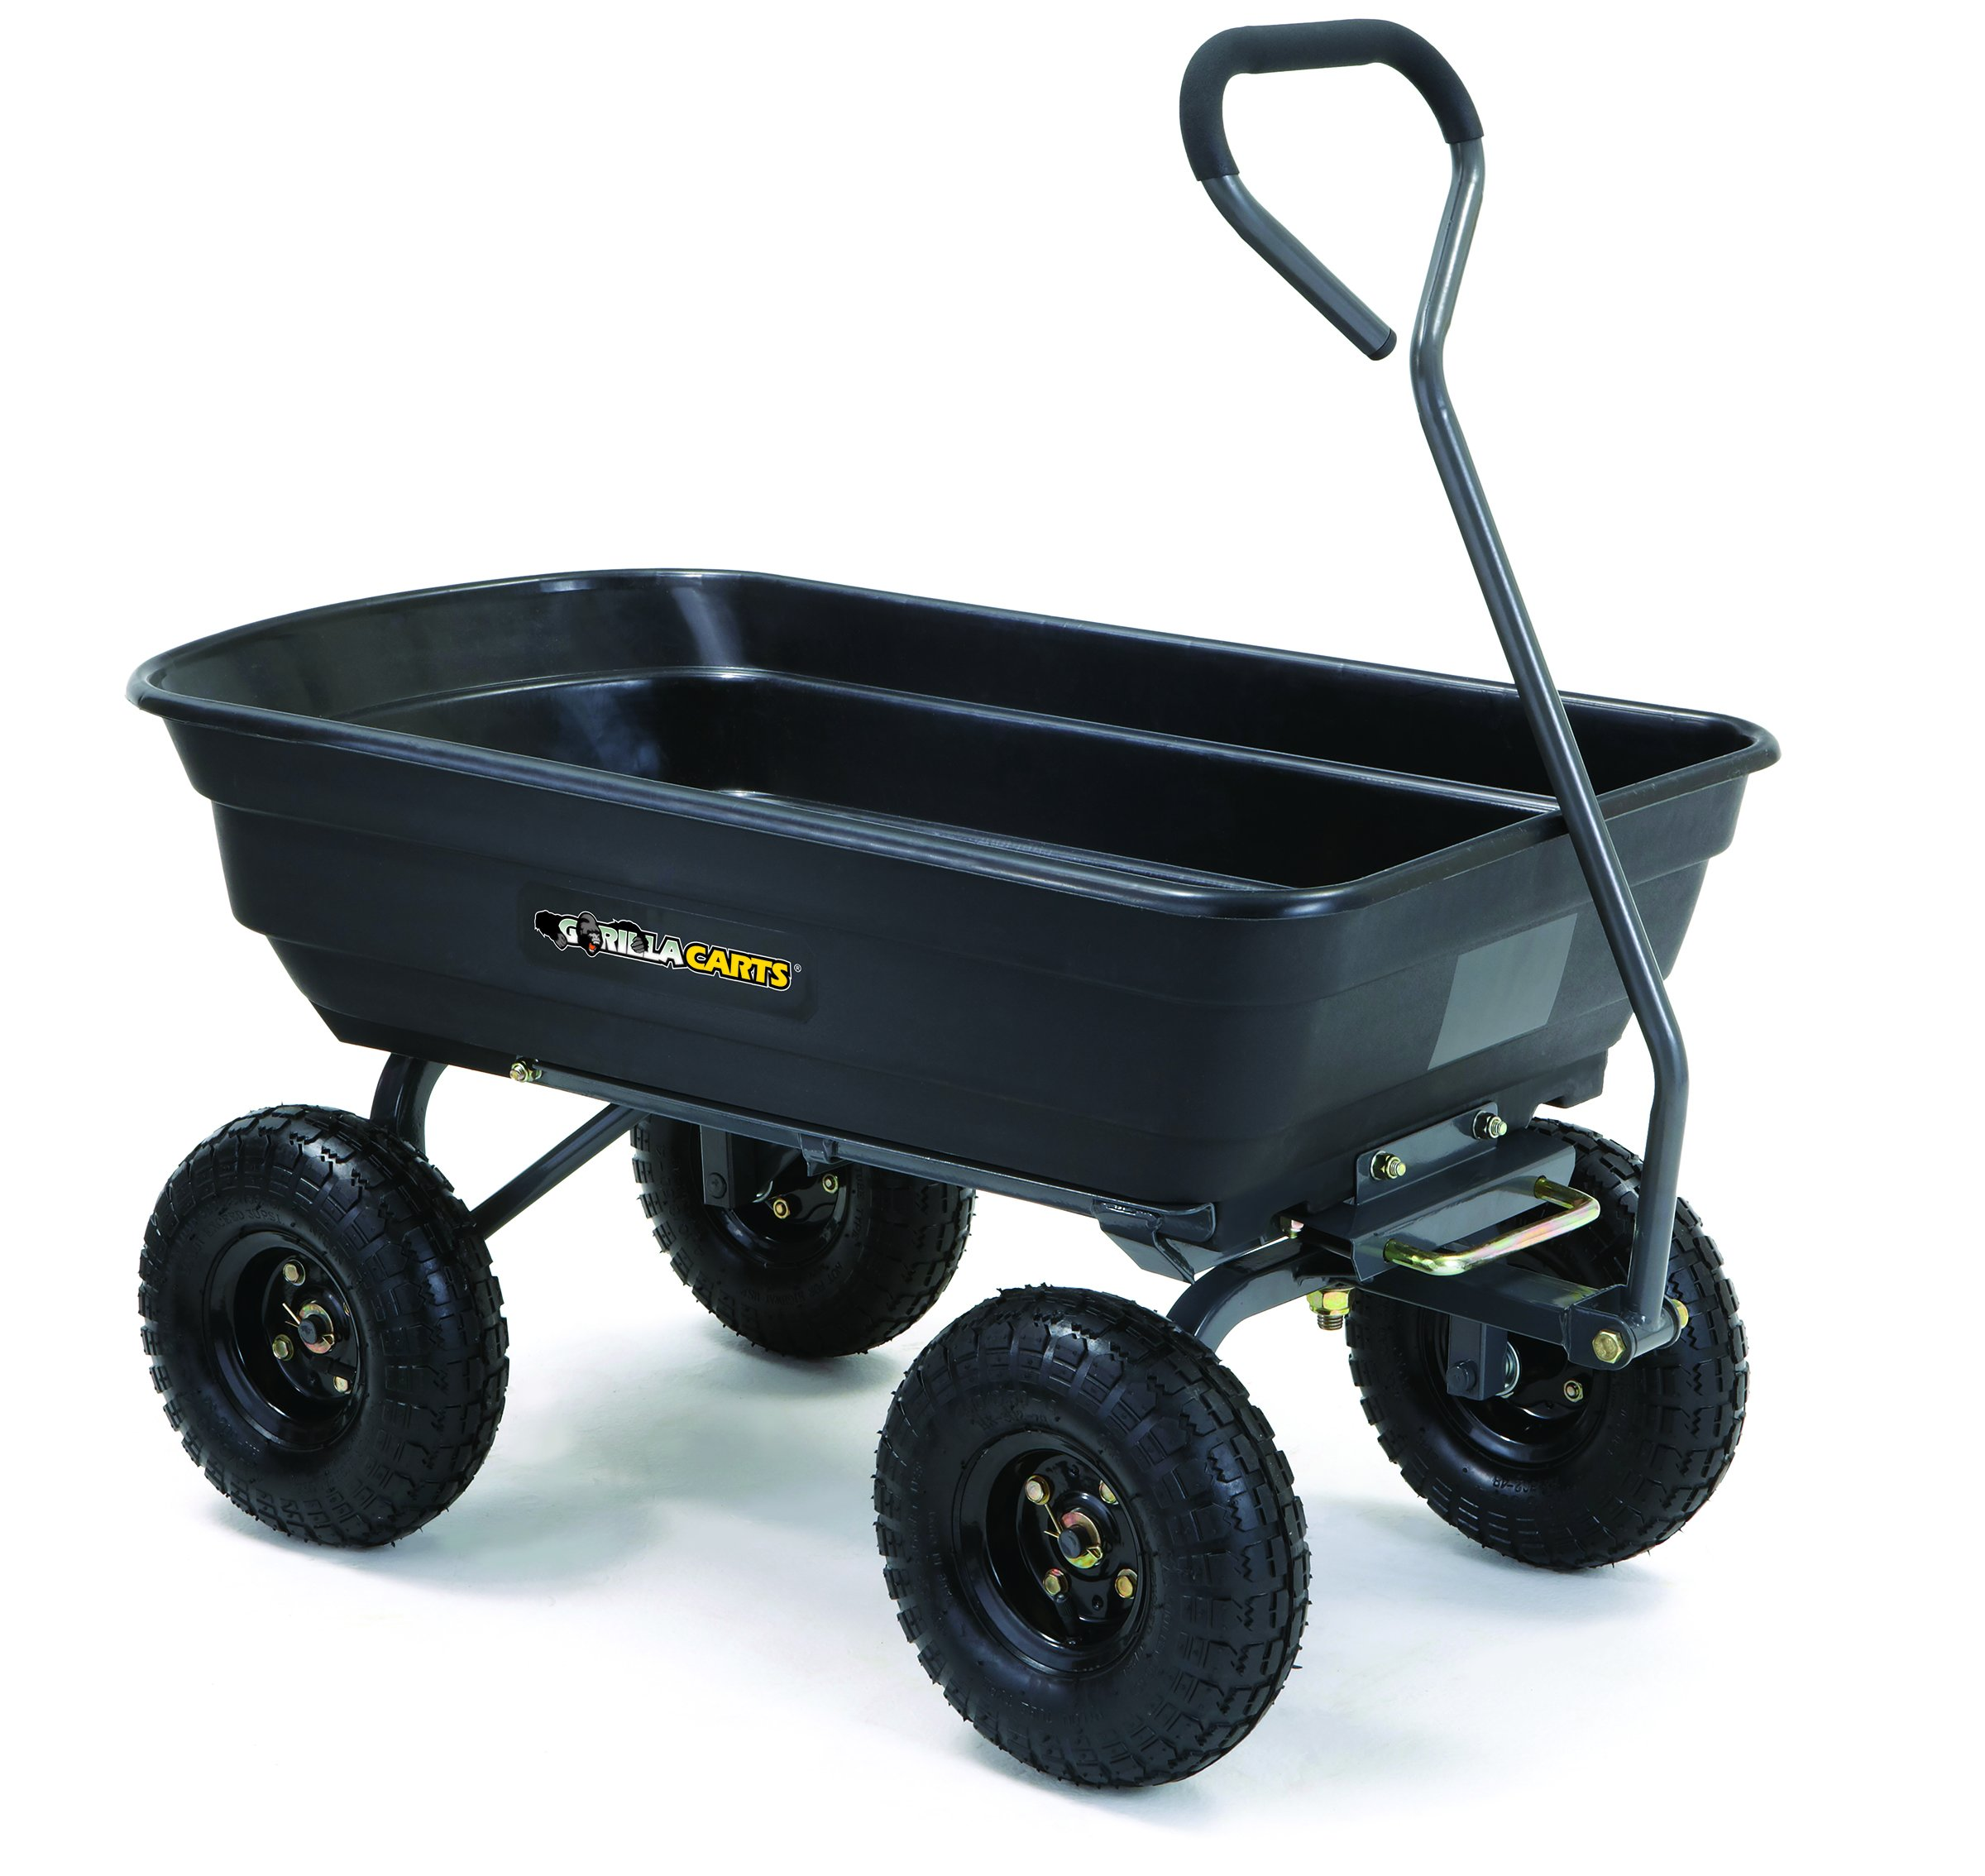 Gorilla Carts GOR4PS Poly Garden Dump Cart with Steel Frame and 10-in. Pneumatic Tires, 600-Pound Capacity, Black by Gorilla Carts